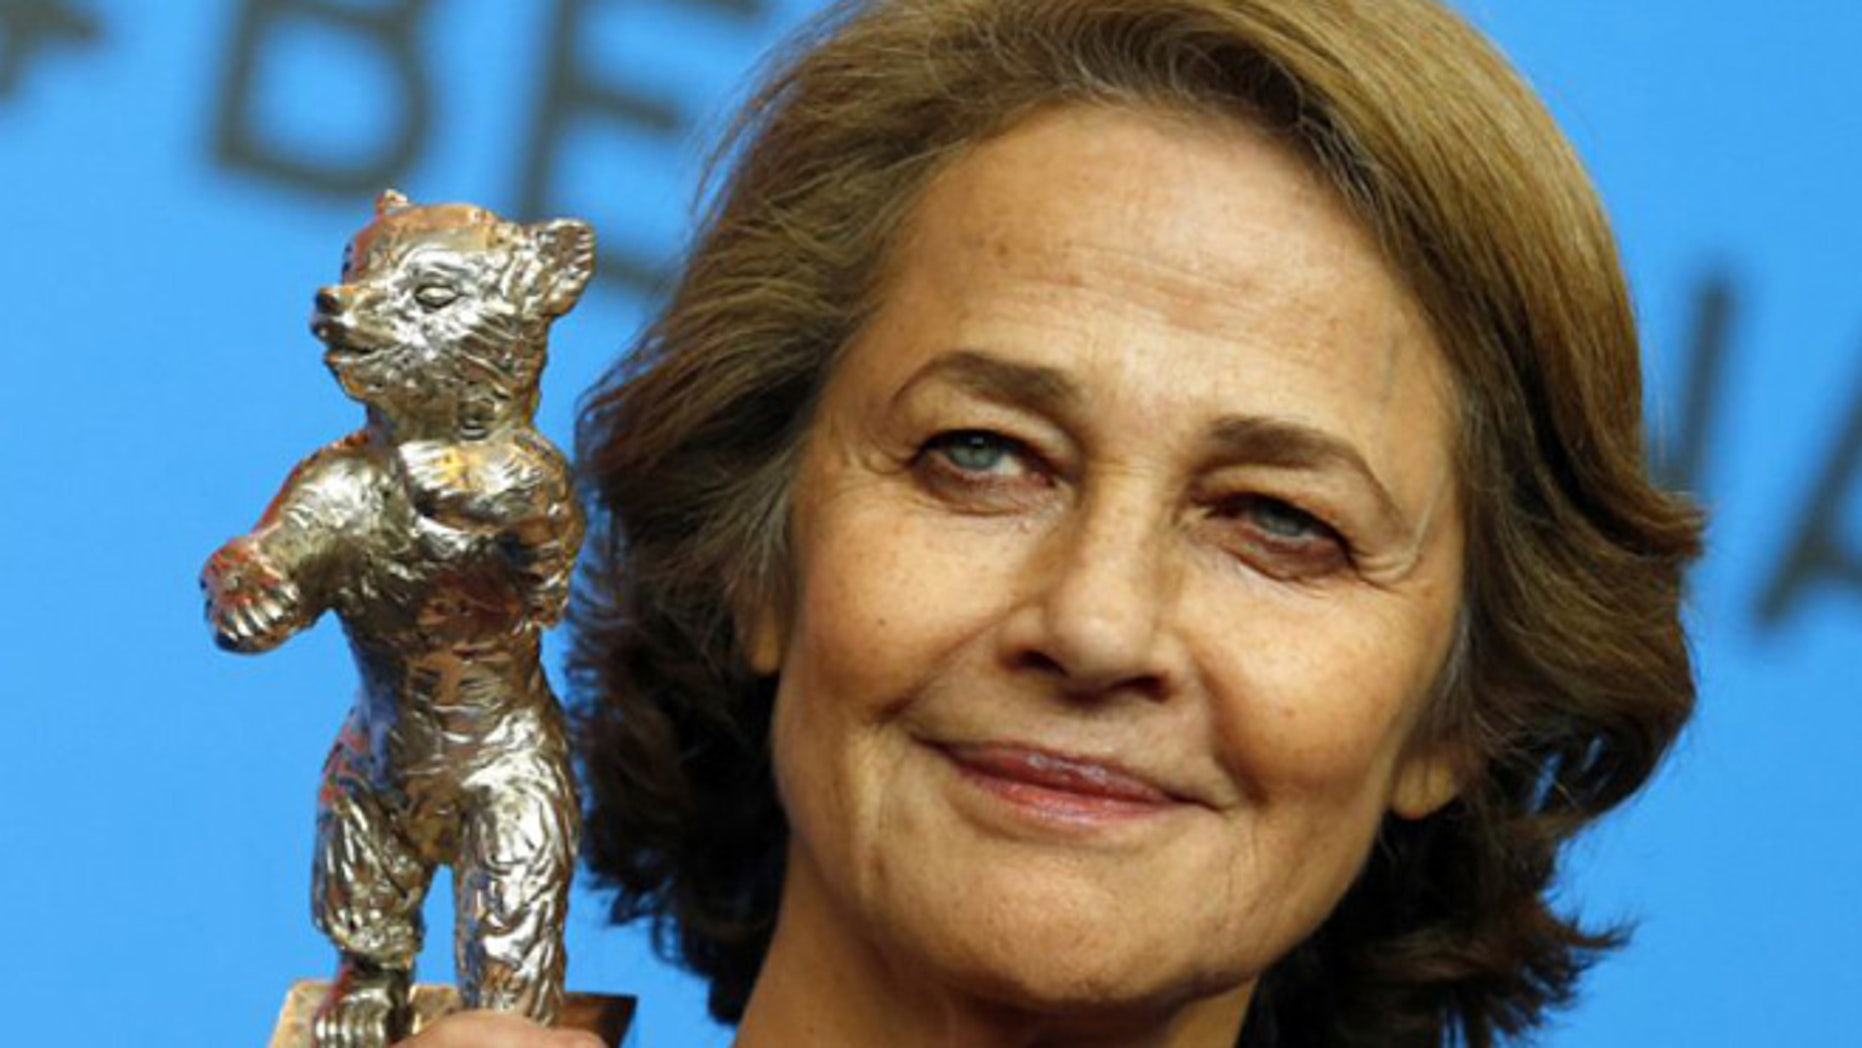 Feb. 14, 2015. Charlotte Rampling holds the Silver Bear for Best Actress for her role in 45 years after the award ceremony at the 2015 Berlinale Film Festival in Berlin, Germany. (The Associated Press)